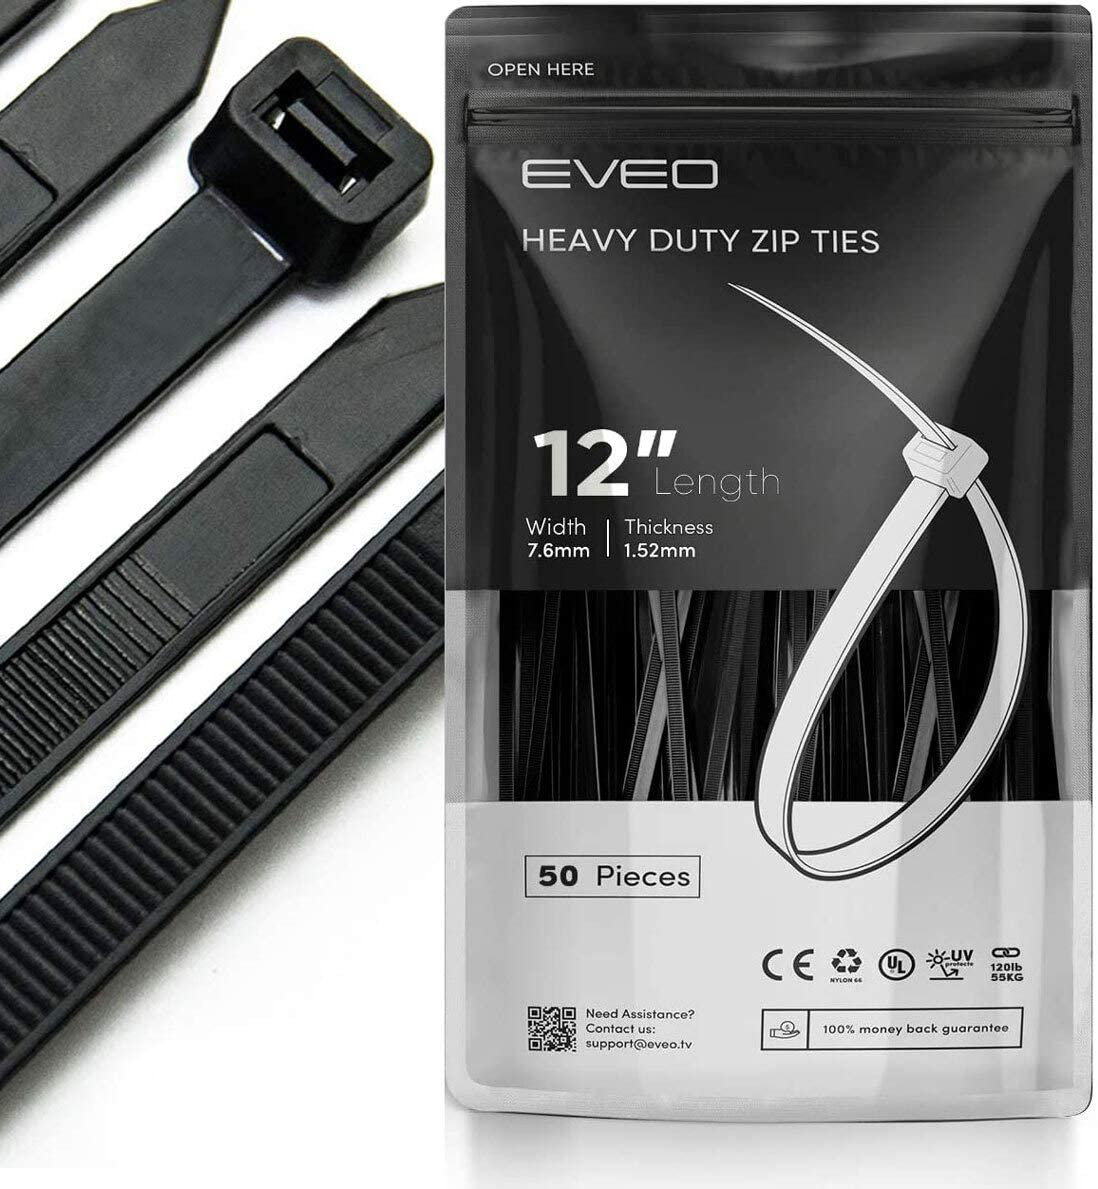 EVEO 12 inch Zip Ties Heavy Duty - Black Zip Ties | Cable Ties Straps & Zipties - Plastic Ties Wire Ties Wraps for Cables